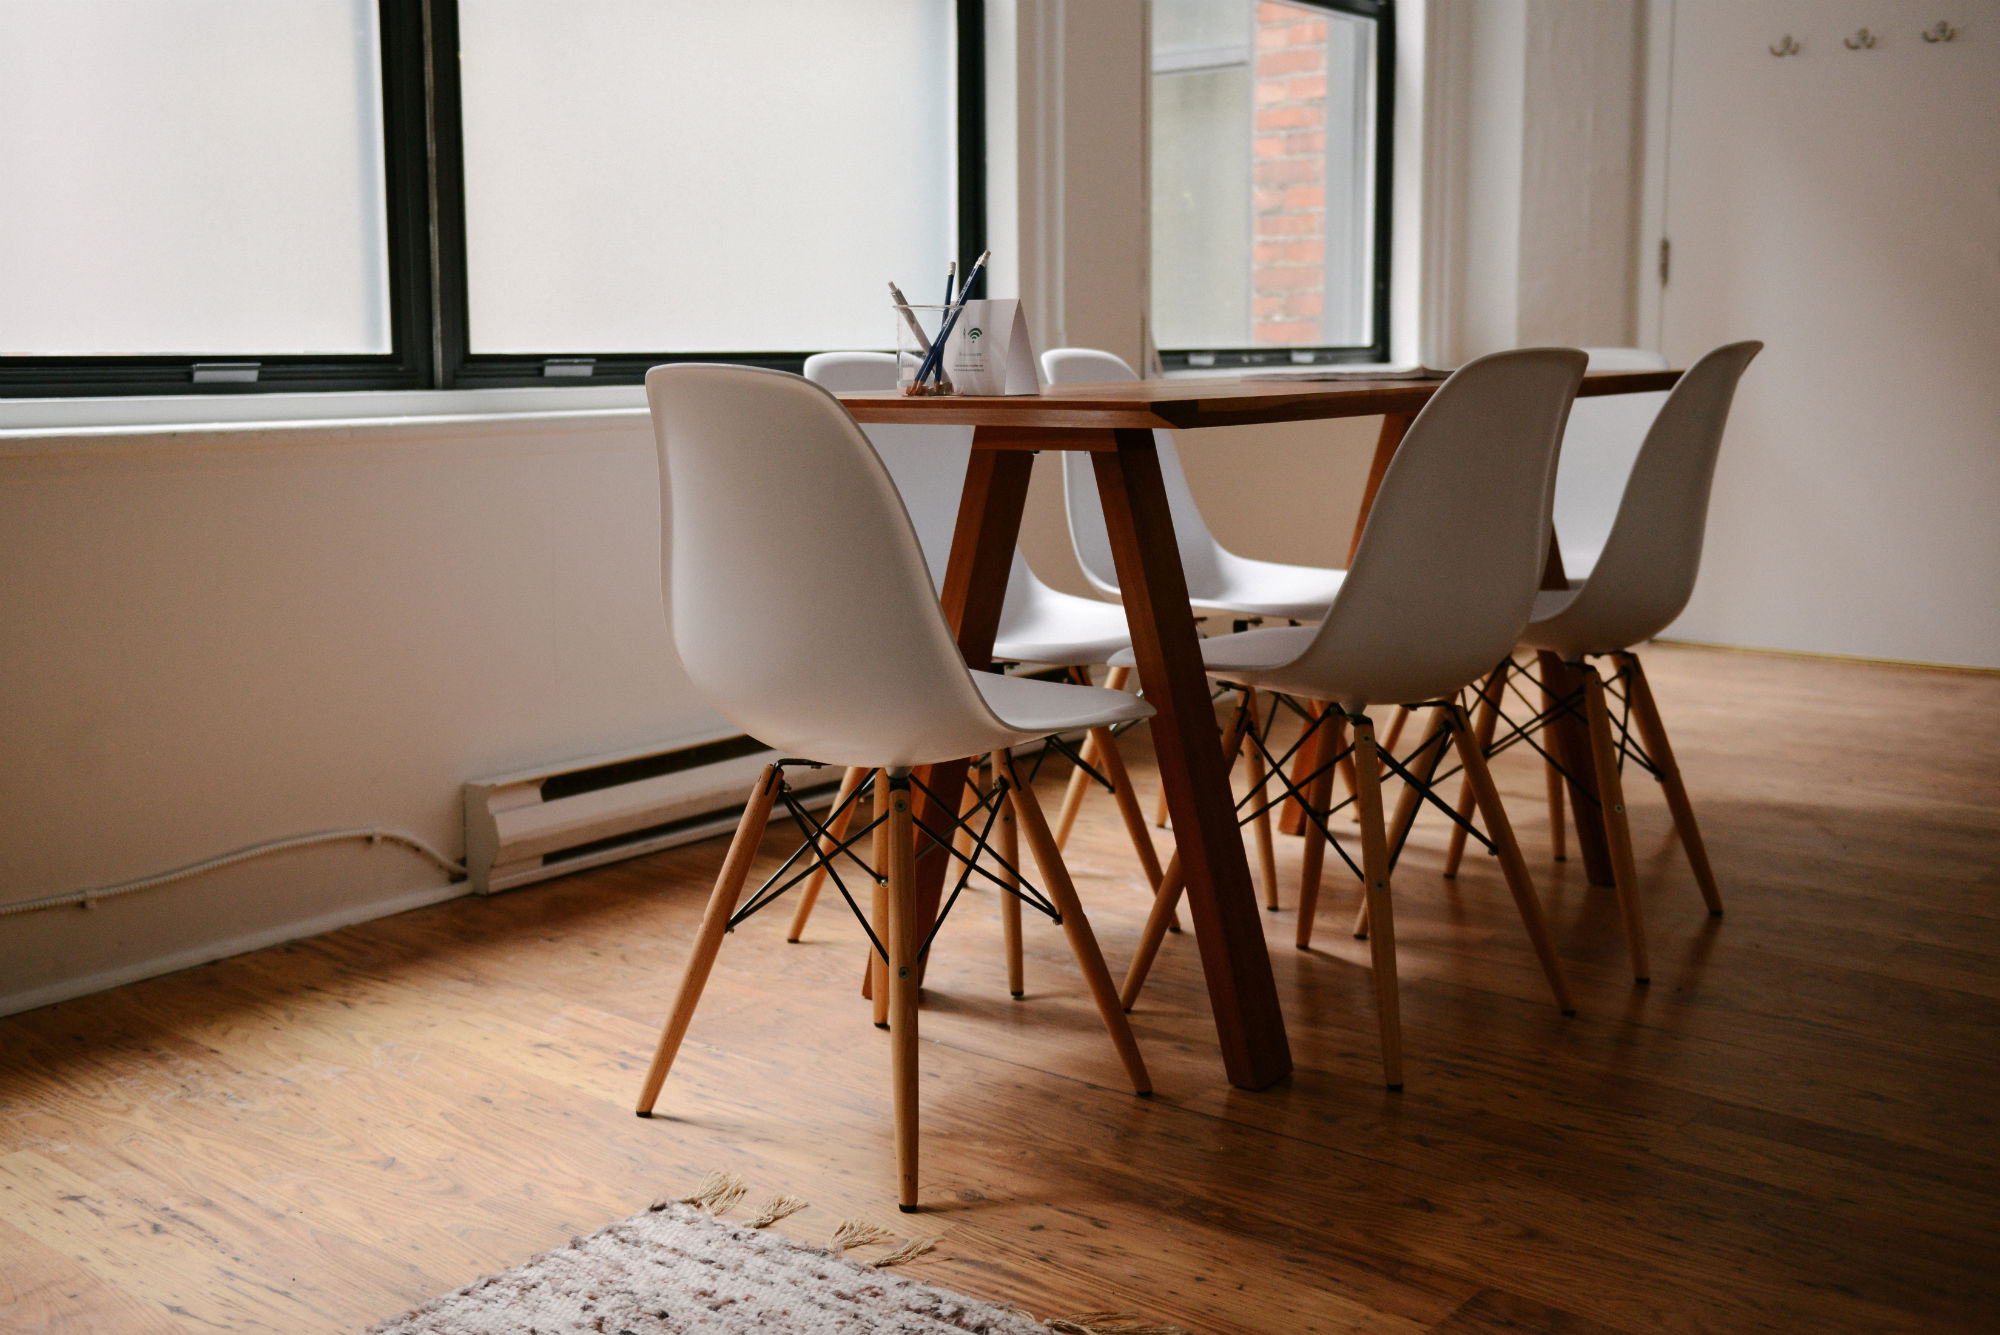 office-table-home-room